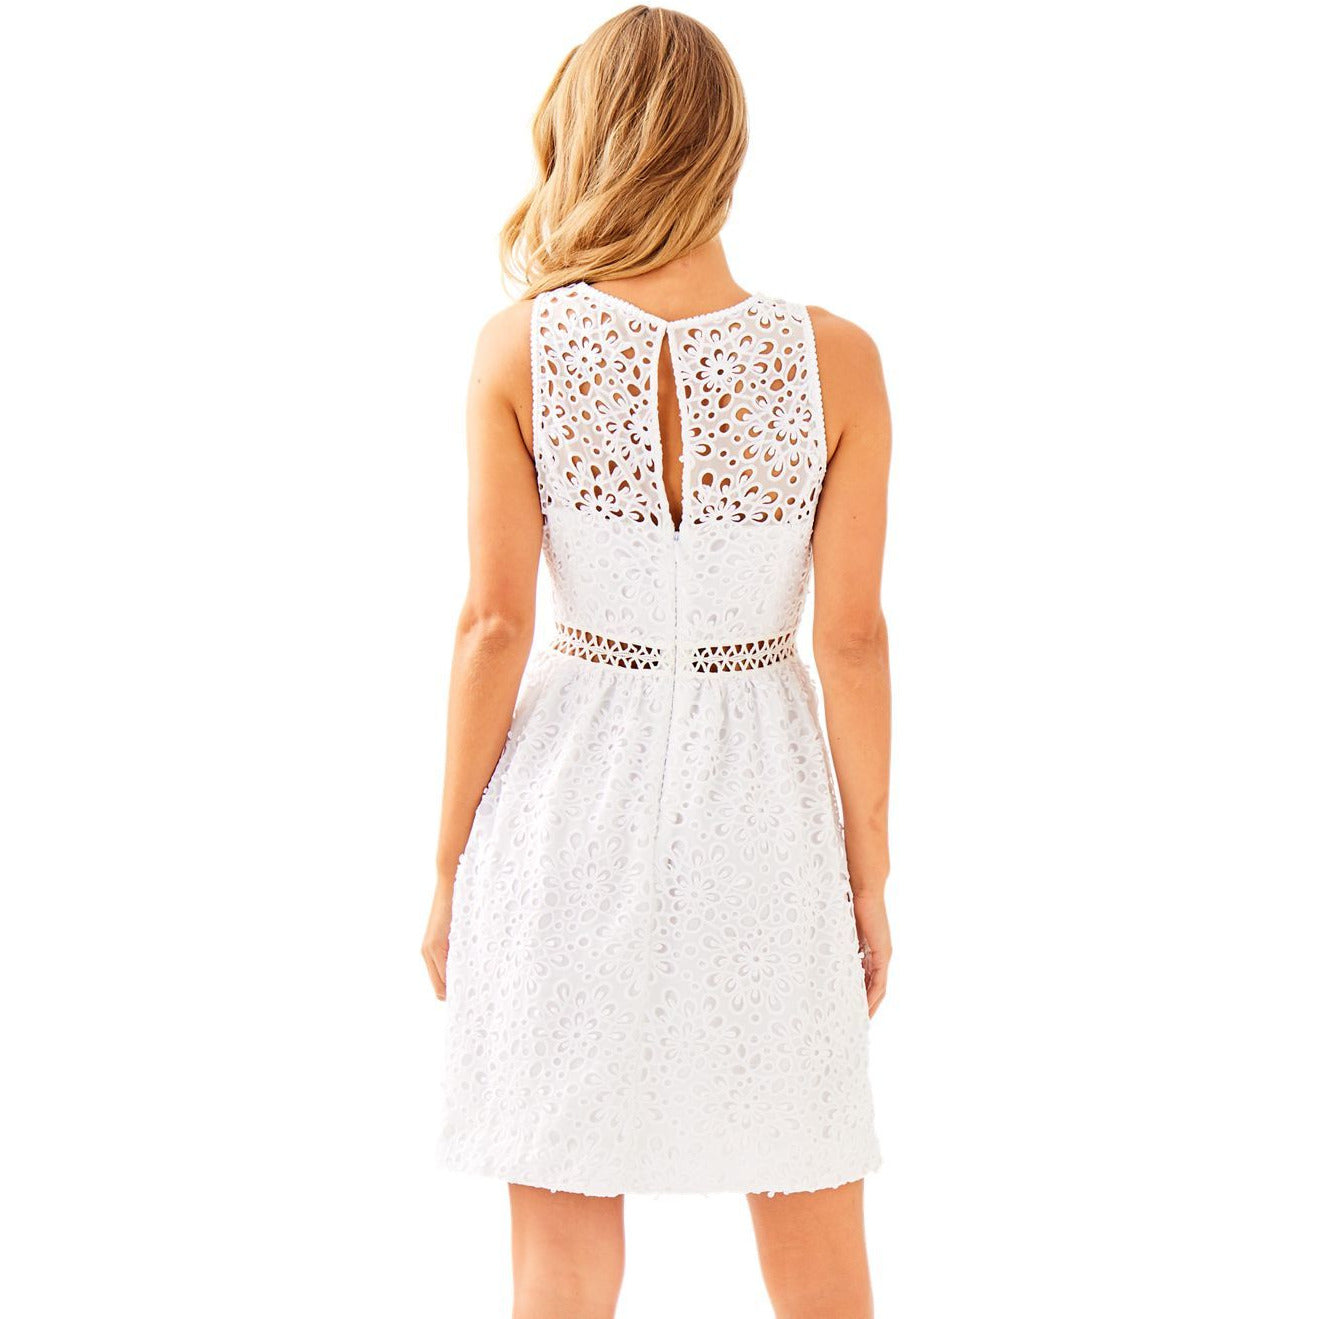 Lilly Pulitzer Alivia Dress Resort White Sea Spray Eyelet